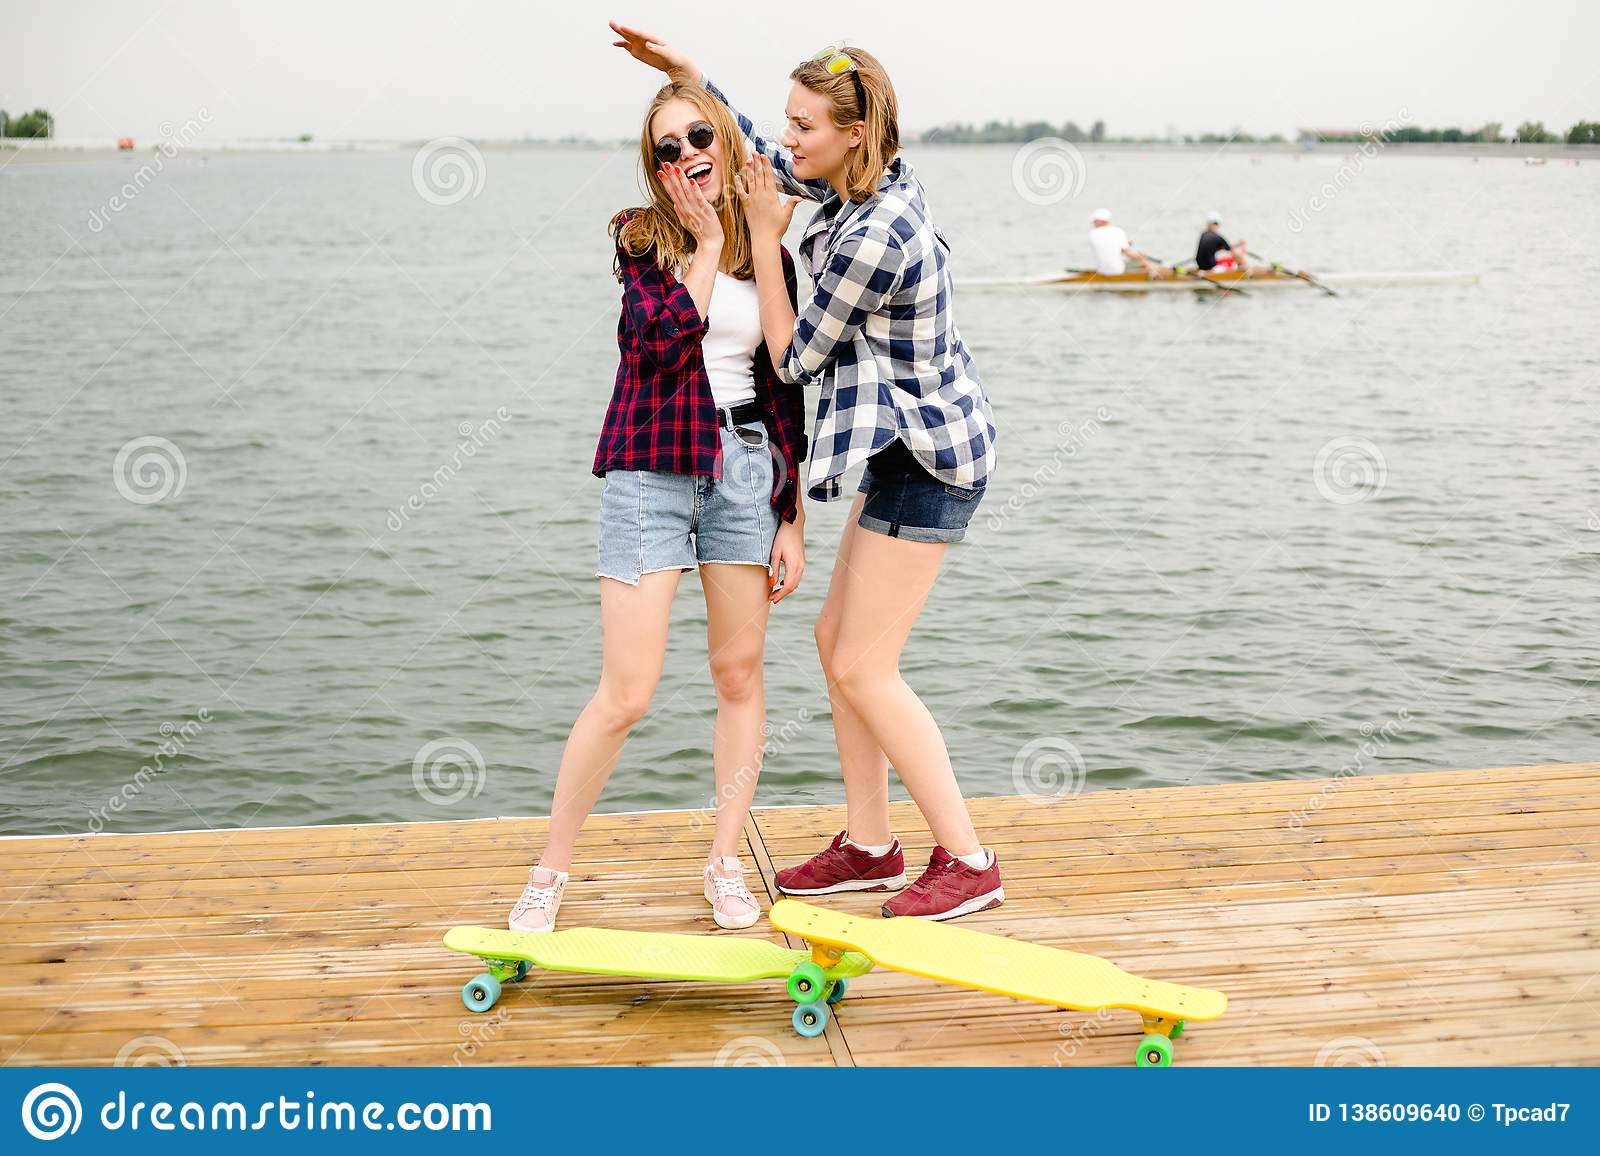 Two cheerful happy skater girls in hipster outfit having fun on a wooden pier during summer vacation